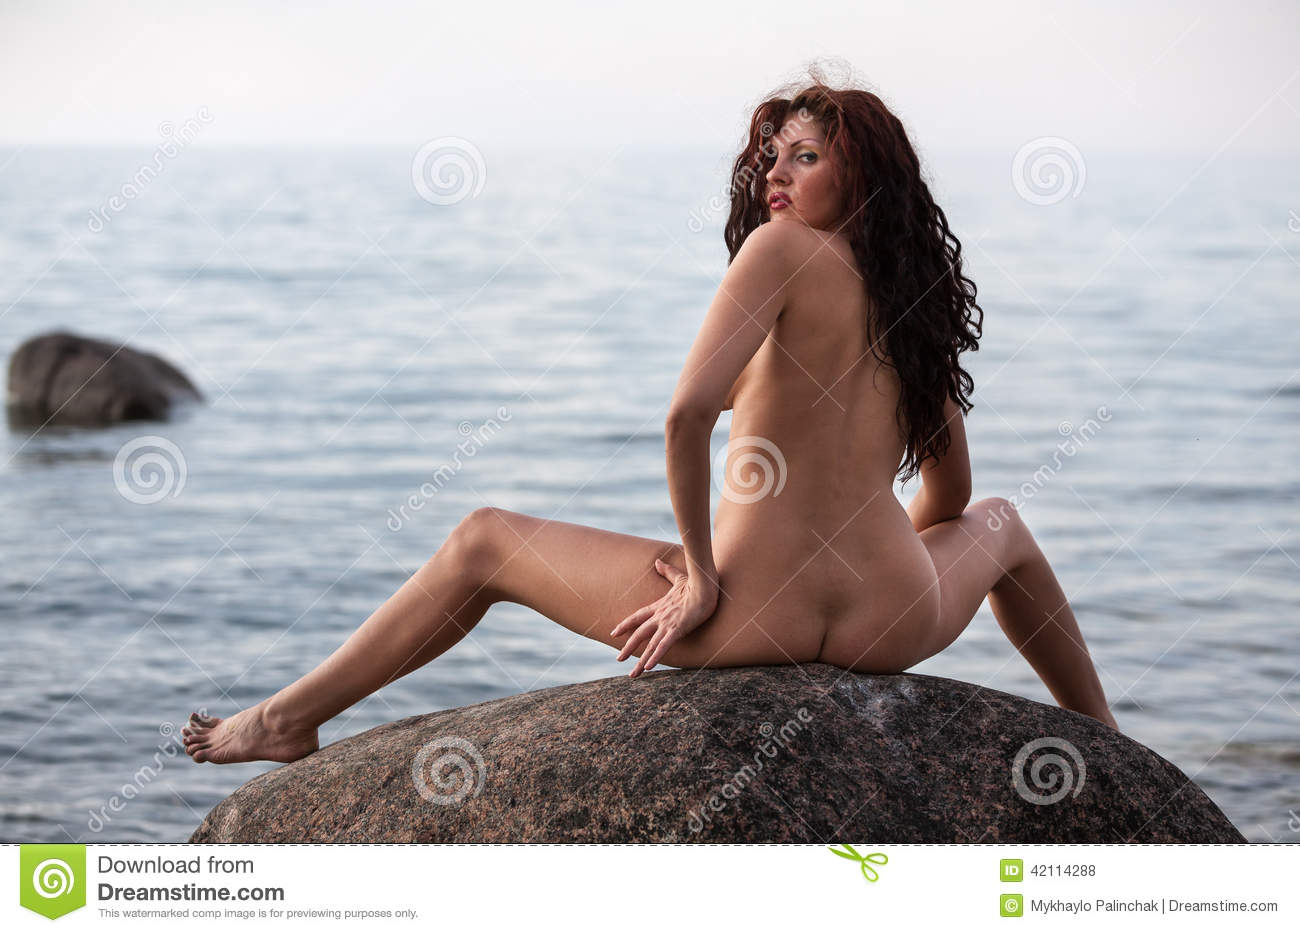 Cowgirl Nudes Nude Women In The Sea